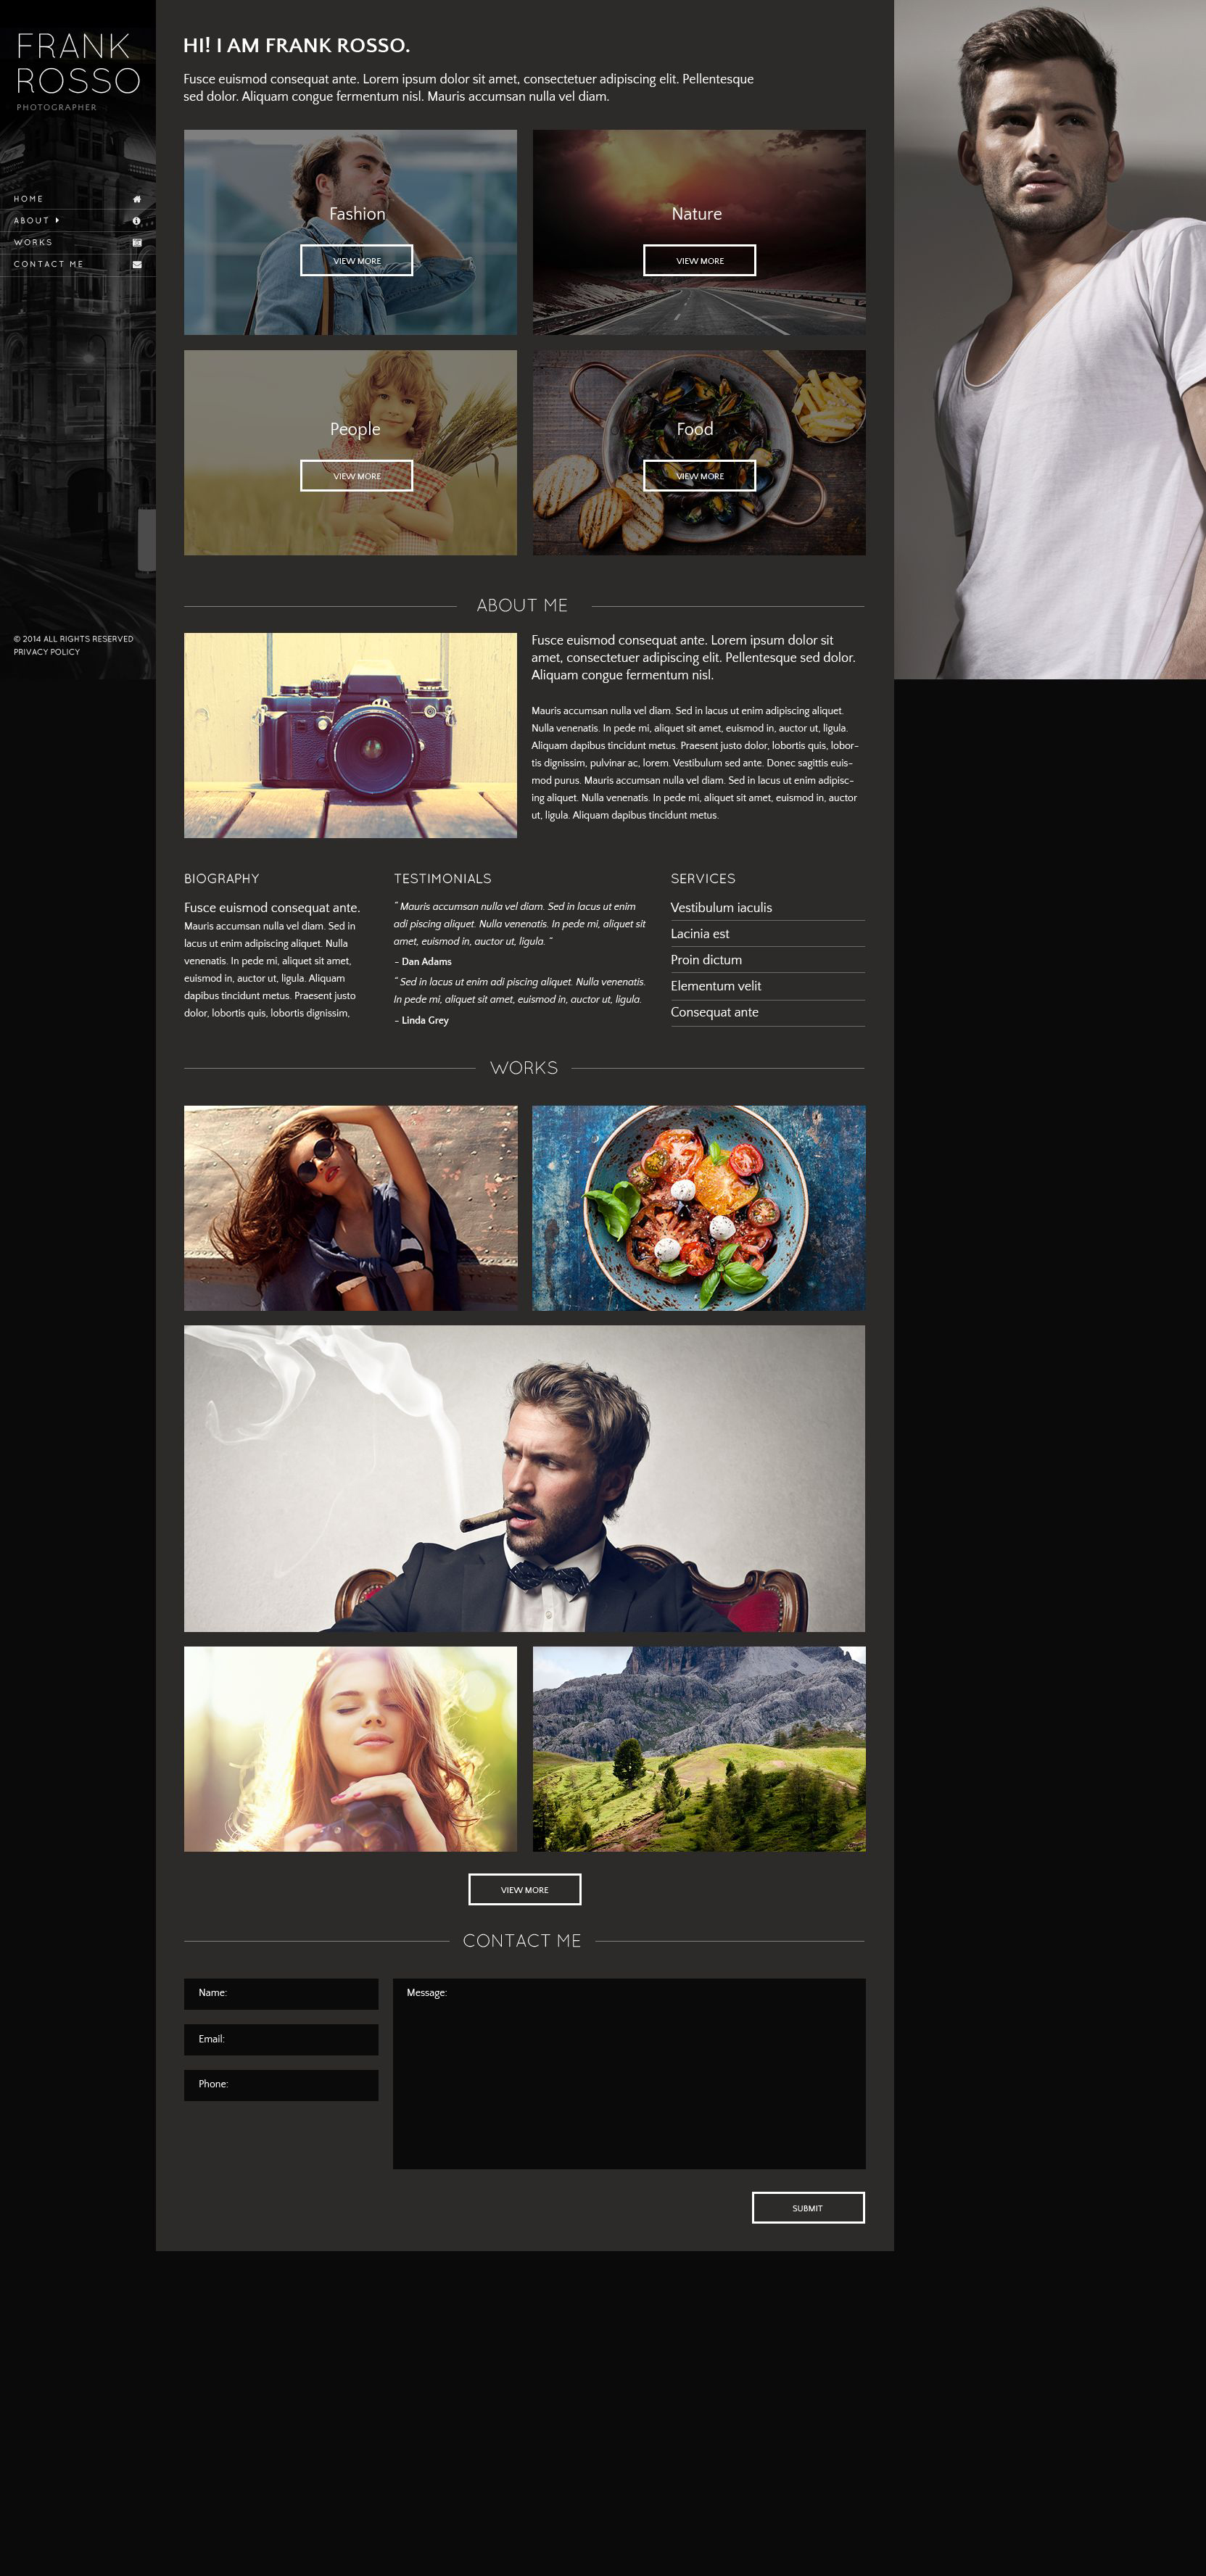 The Frank Rosso Photographer Responsive Javascript Animated Design 53418, one of the best website templates of its kind (art & photography, most popular), also known as Frank Rosso photographer website template, portfolio website template, photography website template, photos website template, camera website template, pictures website template, art gallery website template, digital cameras website template, picture company website template, models and related with Frank Rosso photographer, portfolio, photography, photos, camera, pictures, art gallery, digital cameras, picture company, models, etc.